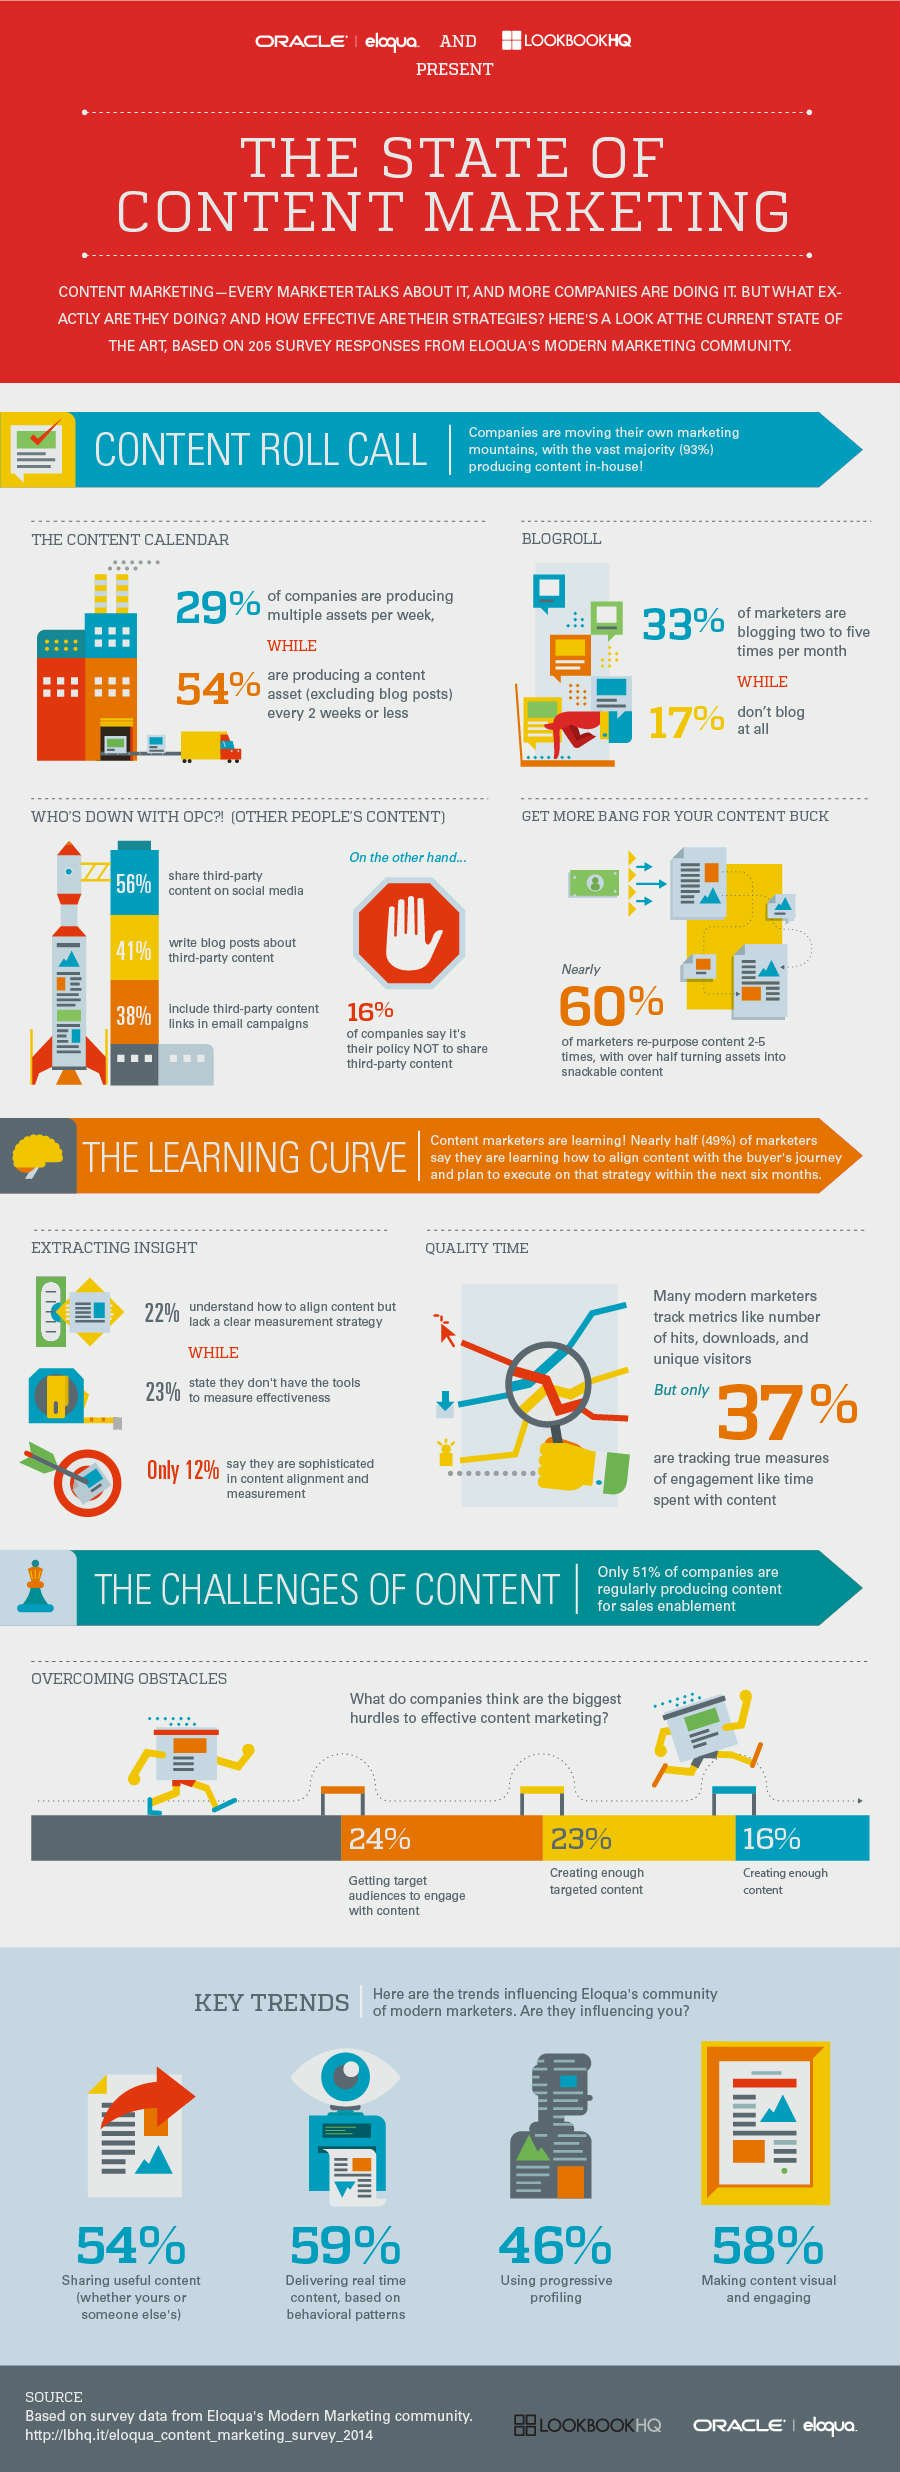 Infographic The State of Content Marketing and a Great Divide